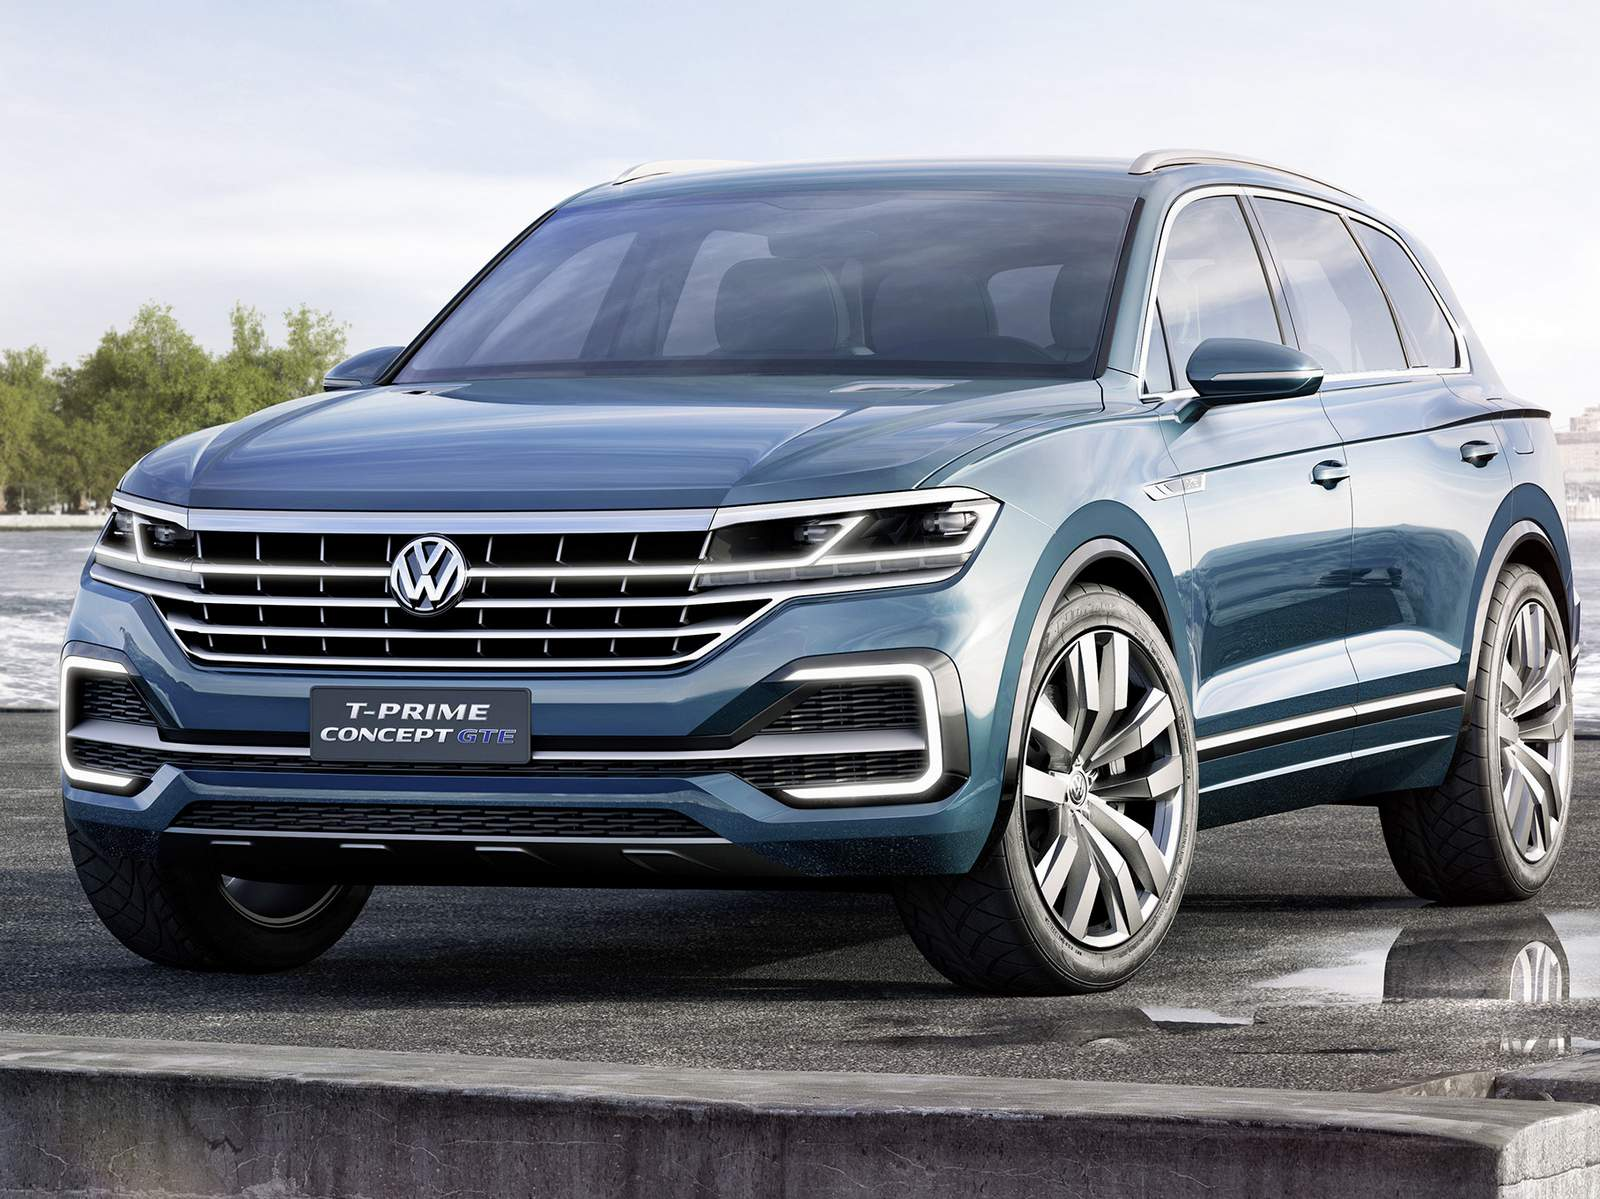 vw touareg 2017 antecipada pelo t prime concept gte car blog br. Black Bedroom Furniture Sets. Home Design Ideas